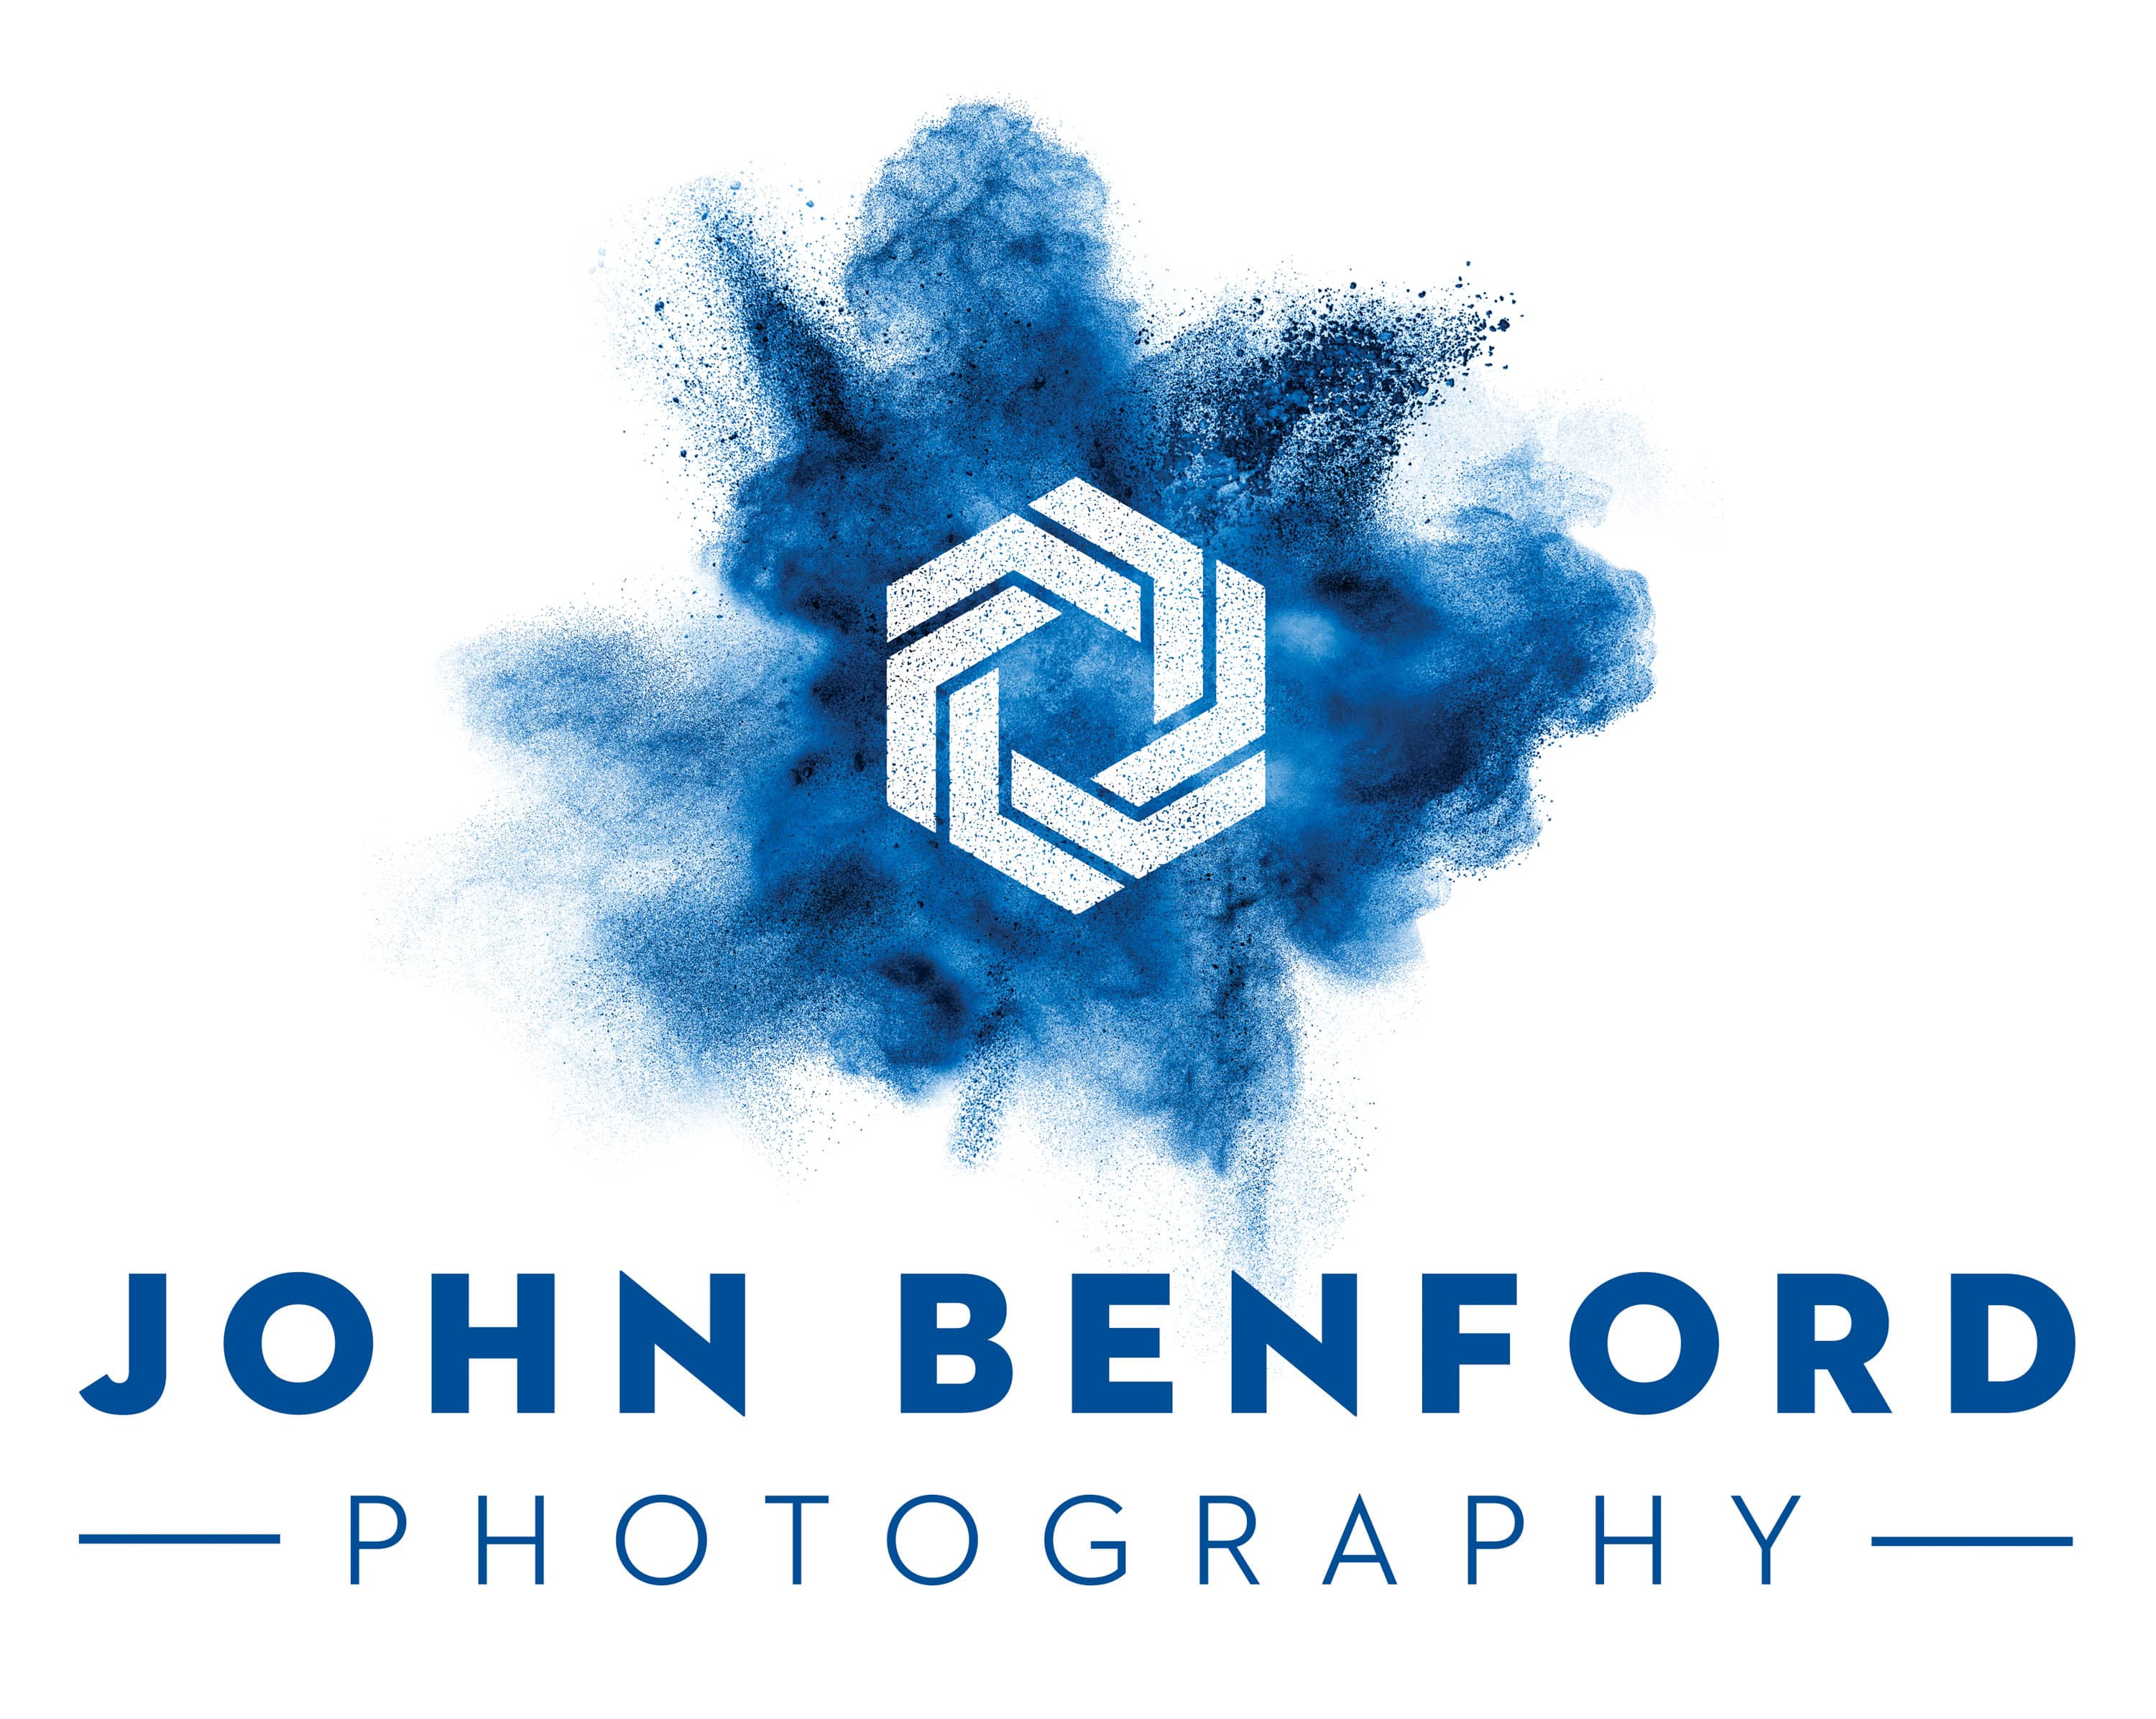 John Benford Photography logo